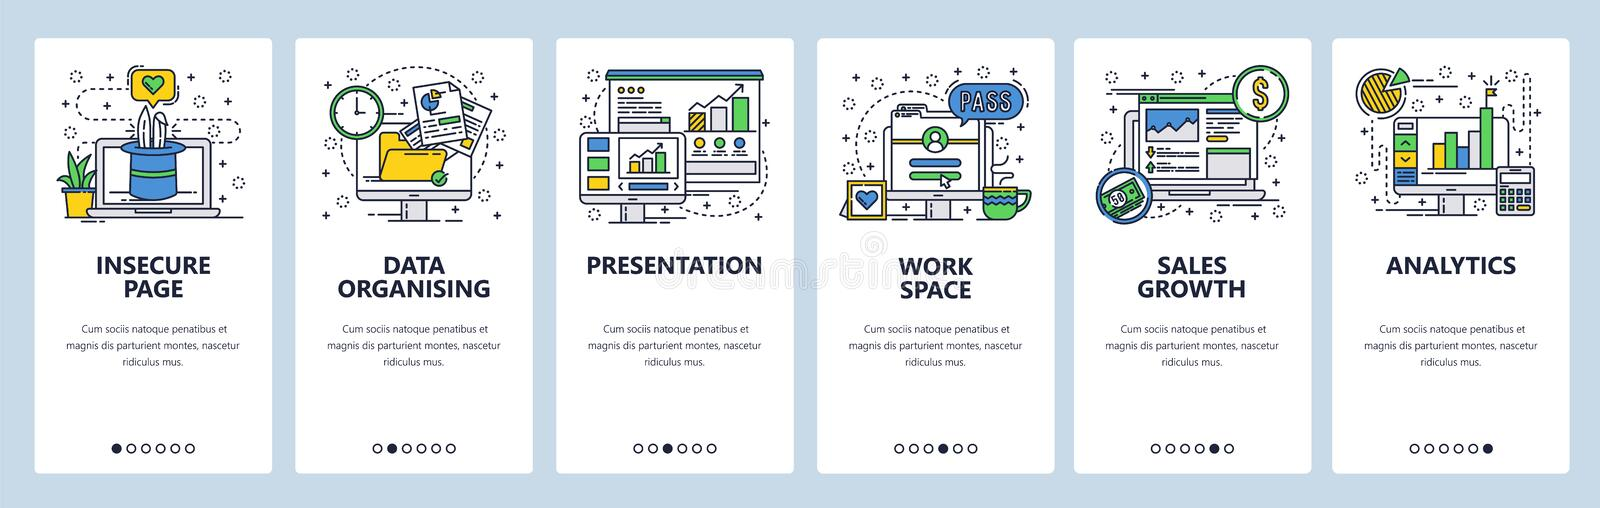 Vector web site linear art onboarding screens template. Business analytics and financial report presentation with charts royalty free illustration